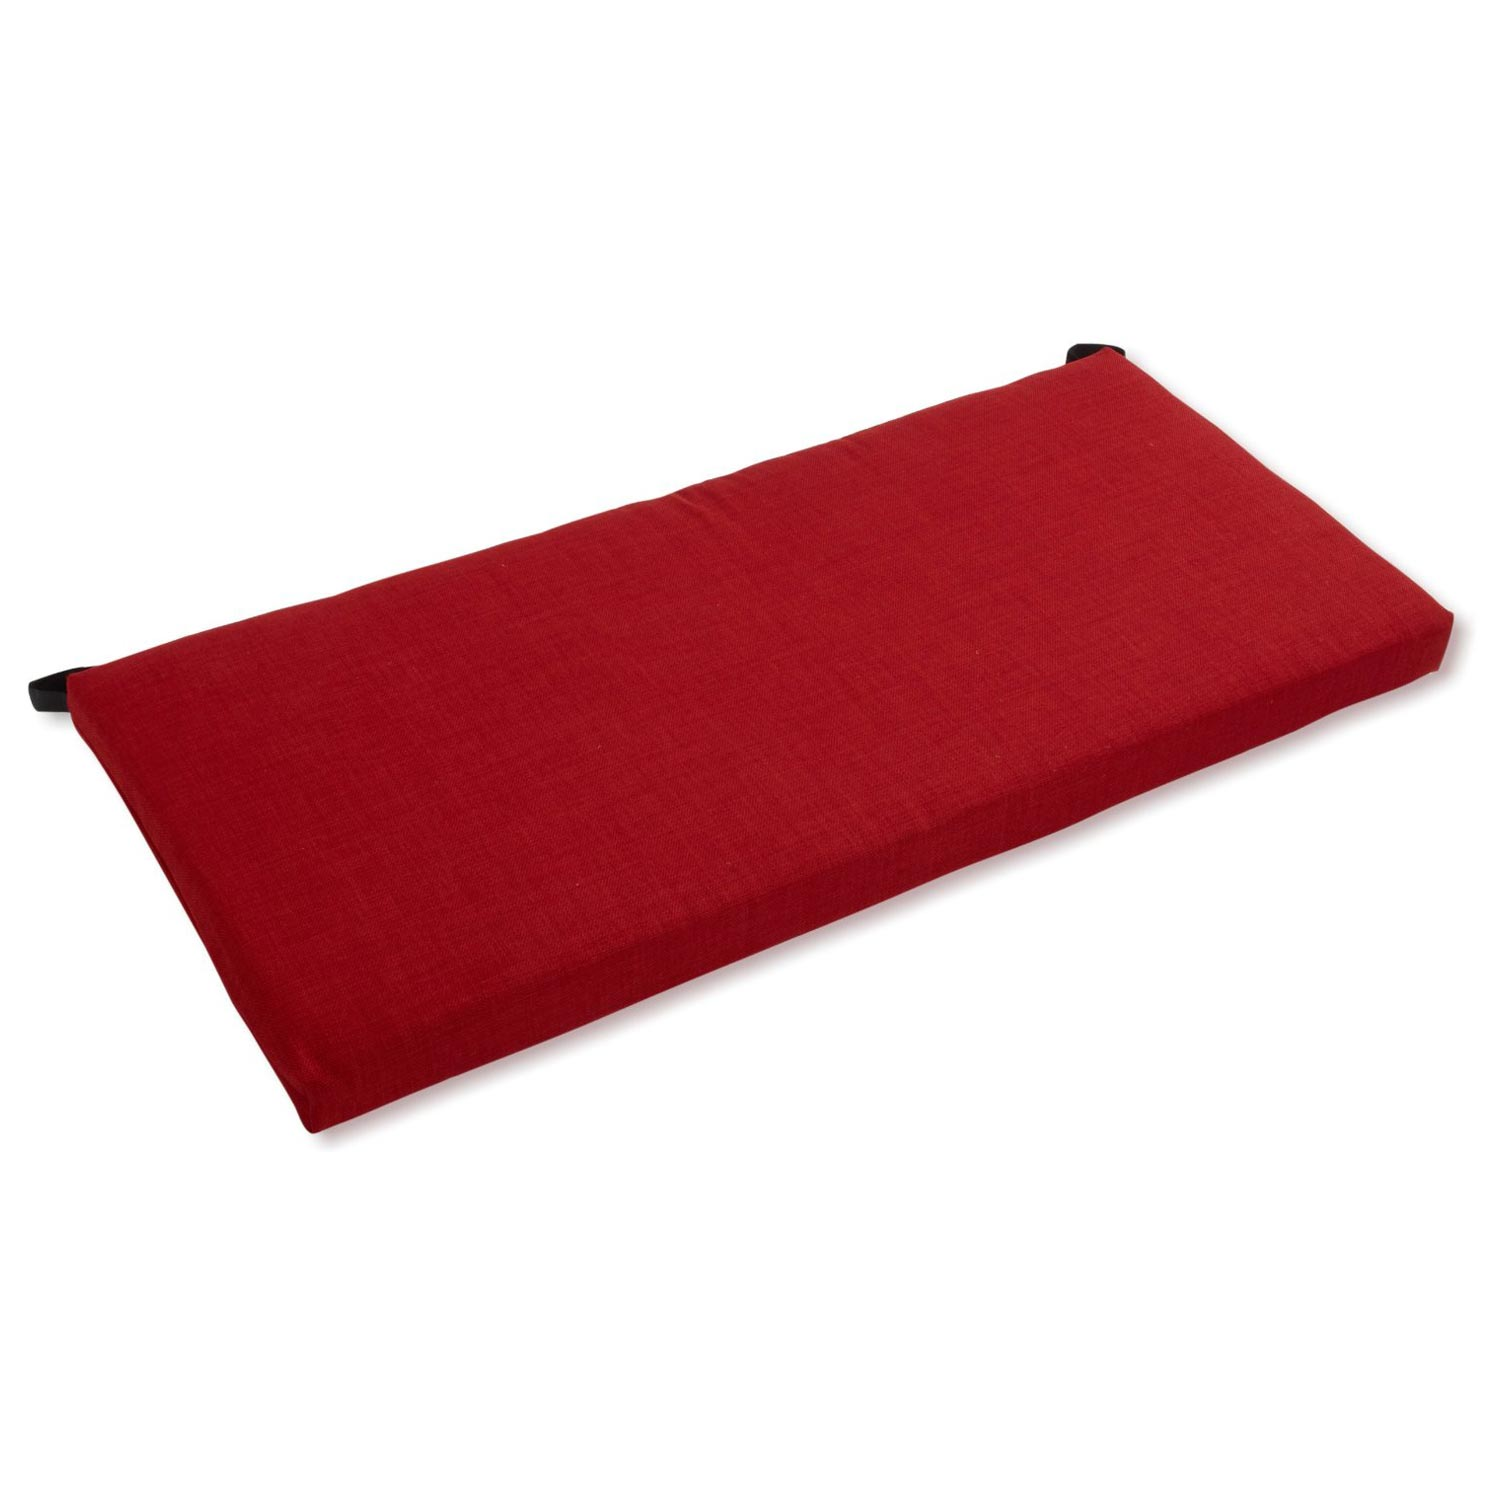 "45"" x 19"" Outdoor Bench Cushion - Solid Color Fabric - BLZ-945X19-REO-S"